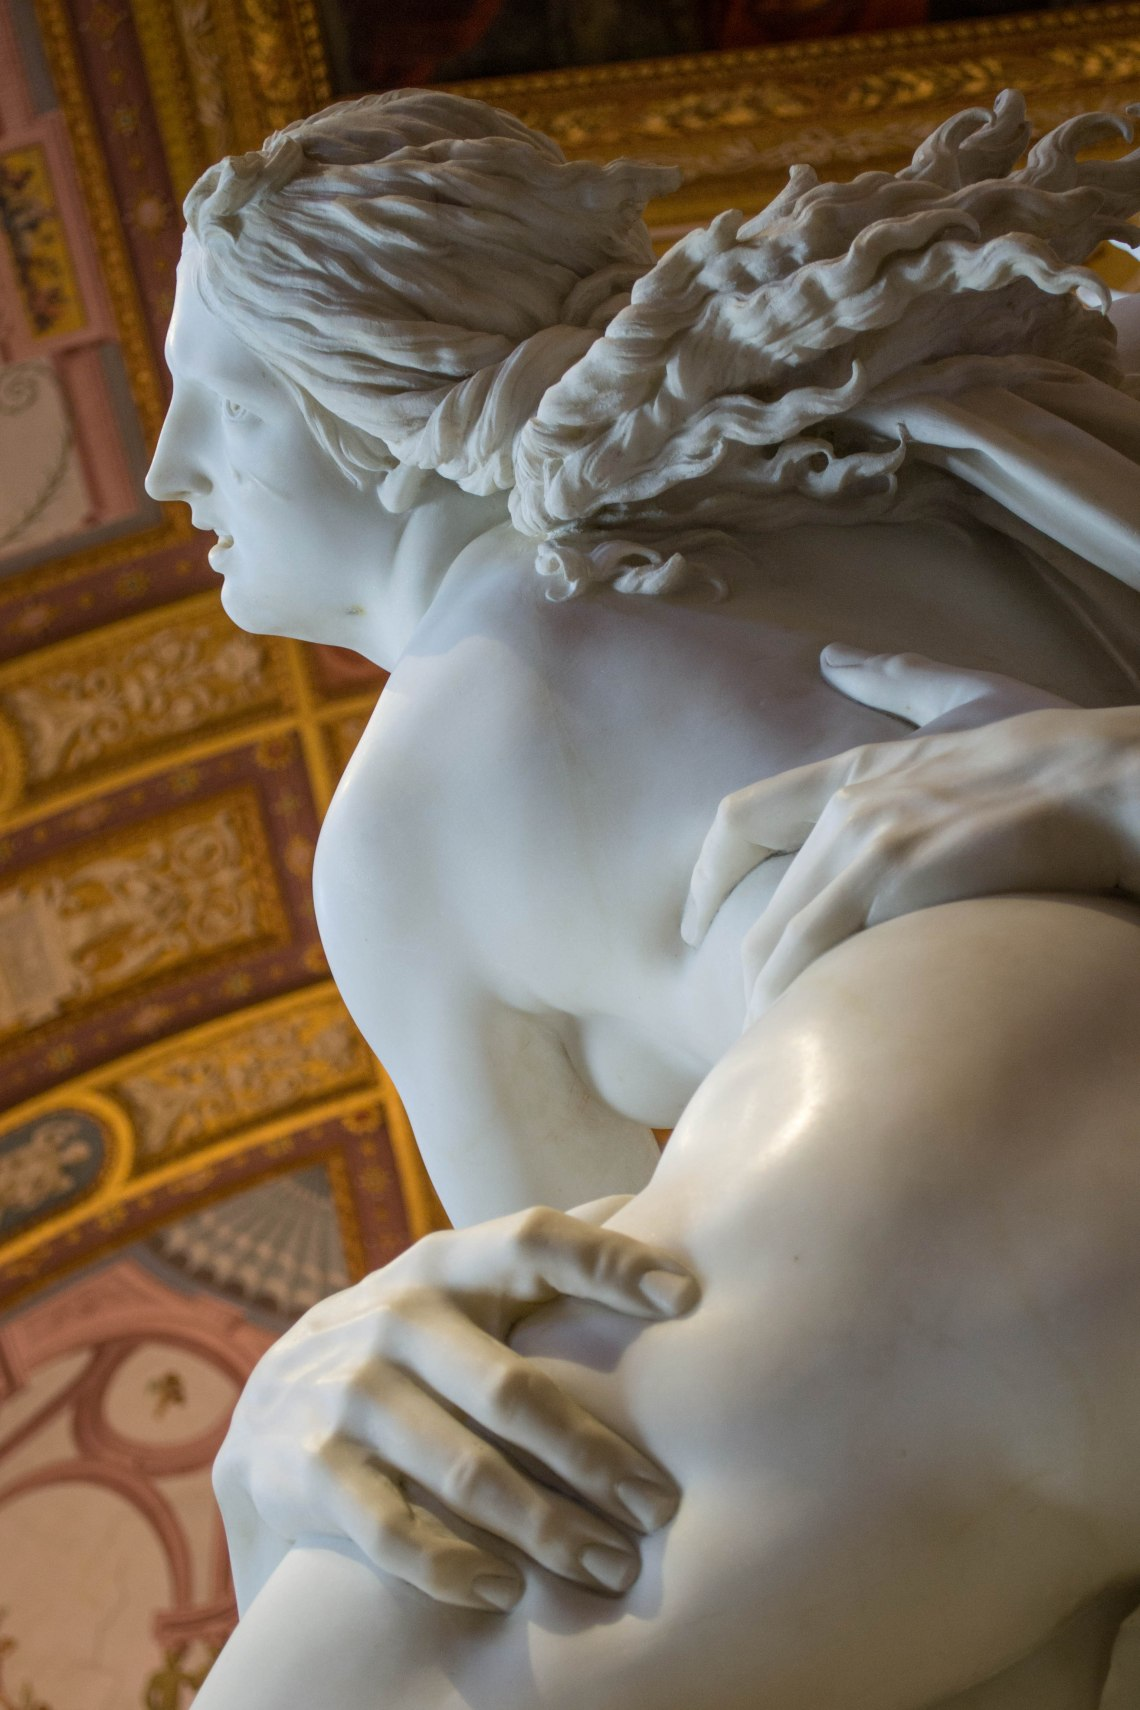 Borghese Museum, Rome, Italy